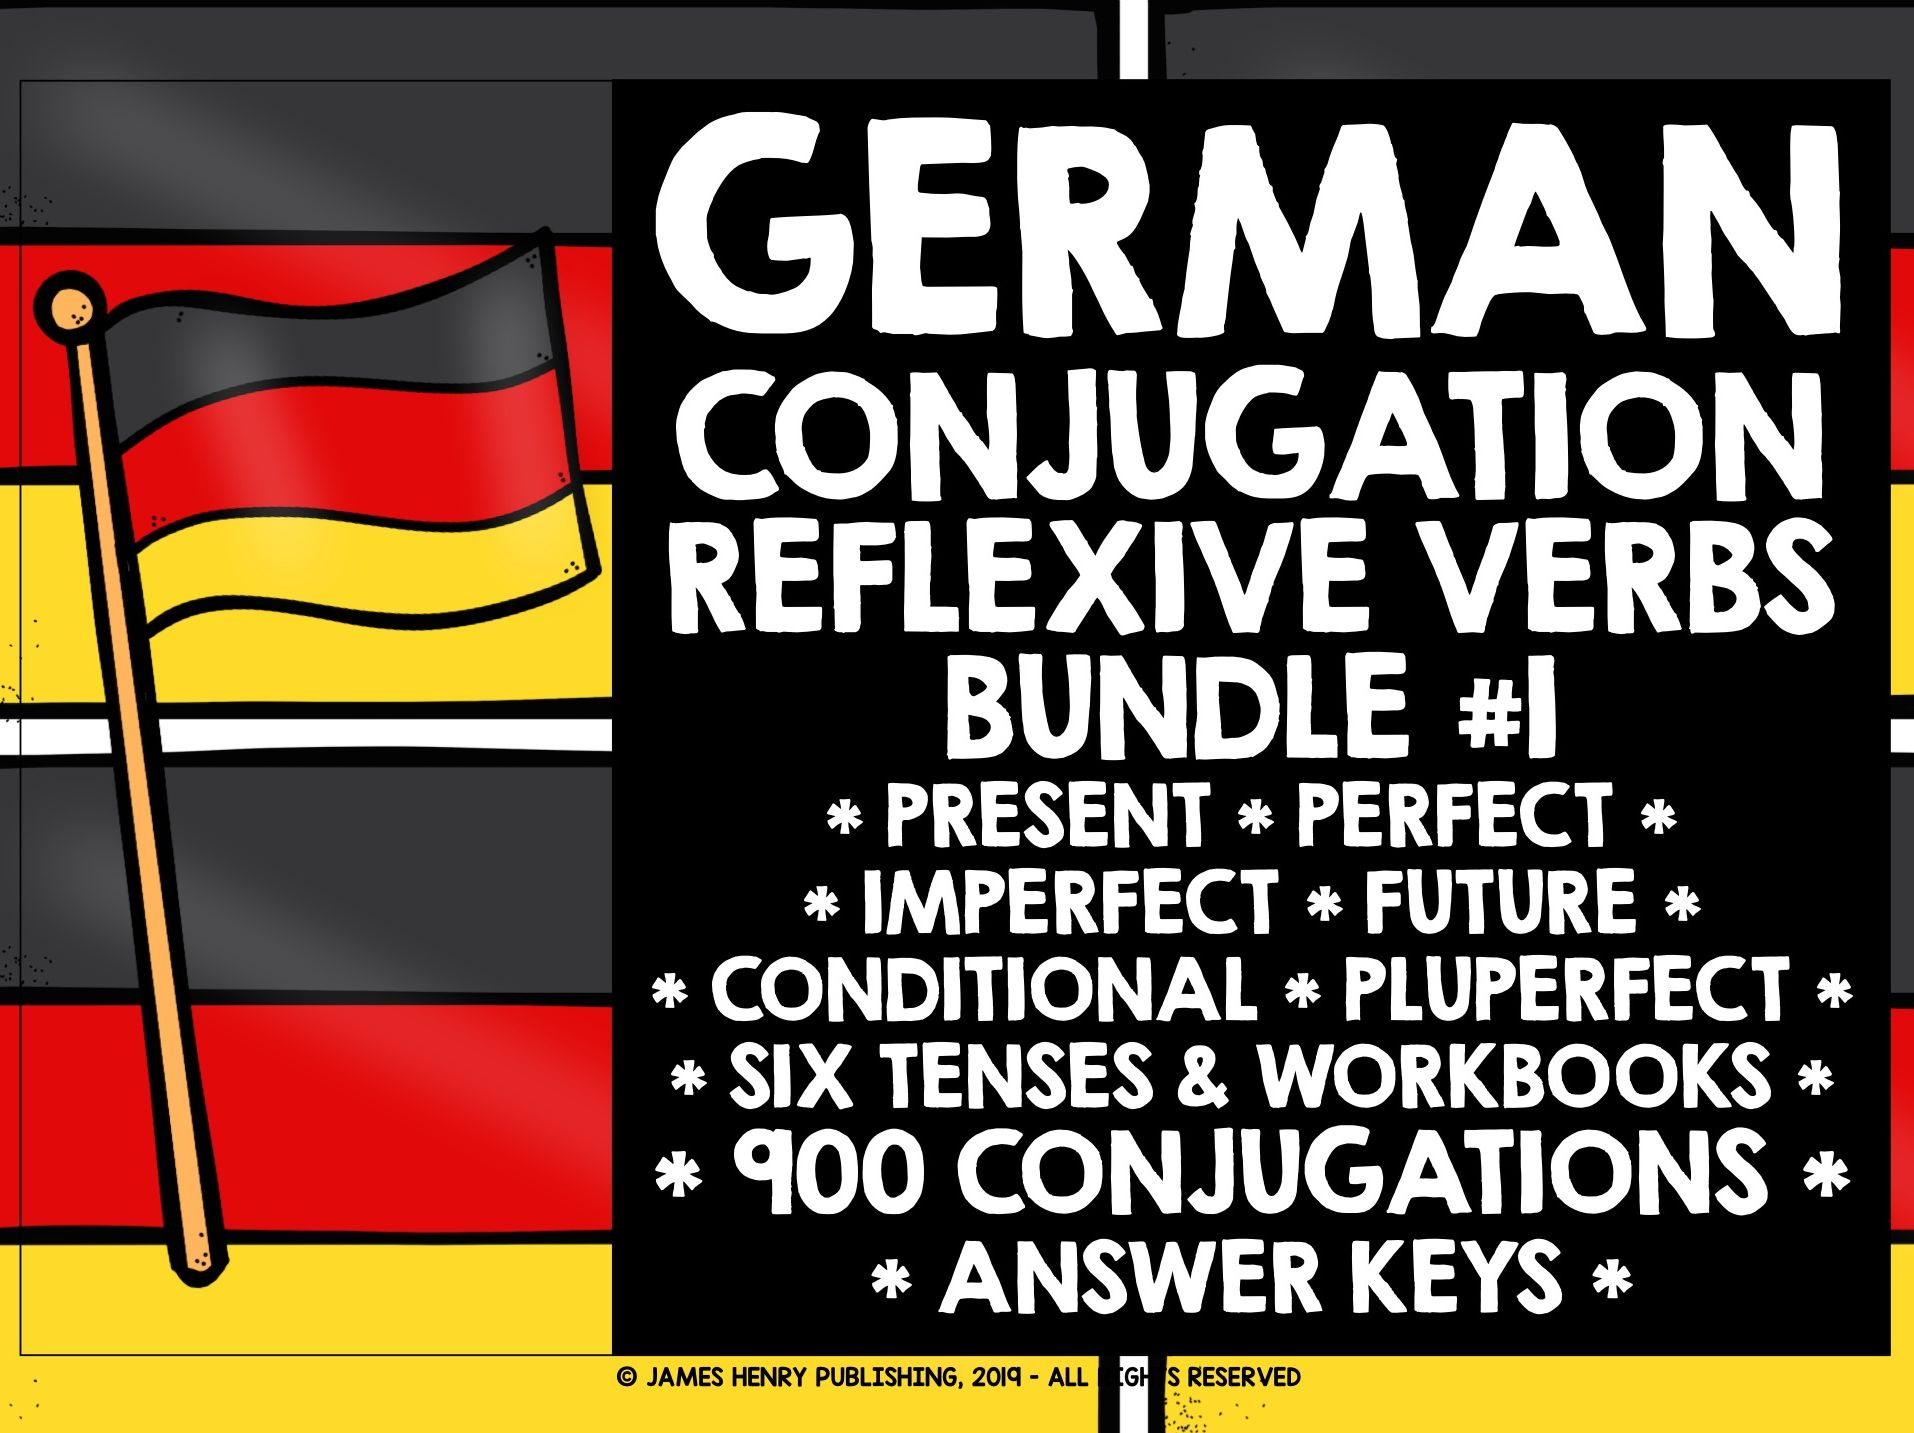 GERMAN REFLEXIVE VERBS CONJUGATION BUNDLE 1